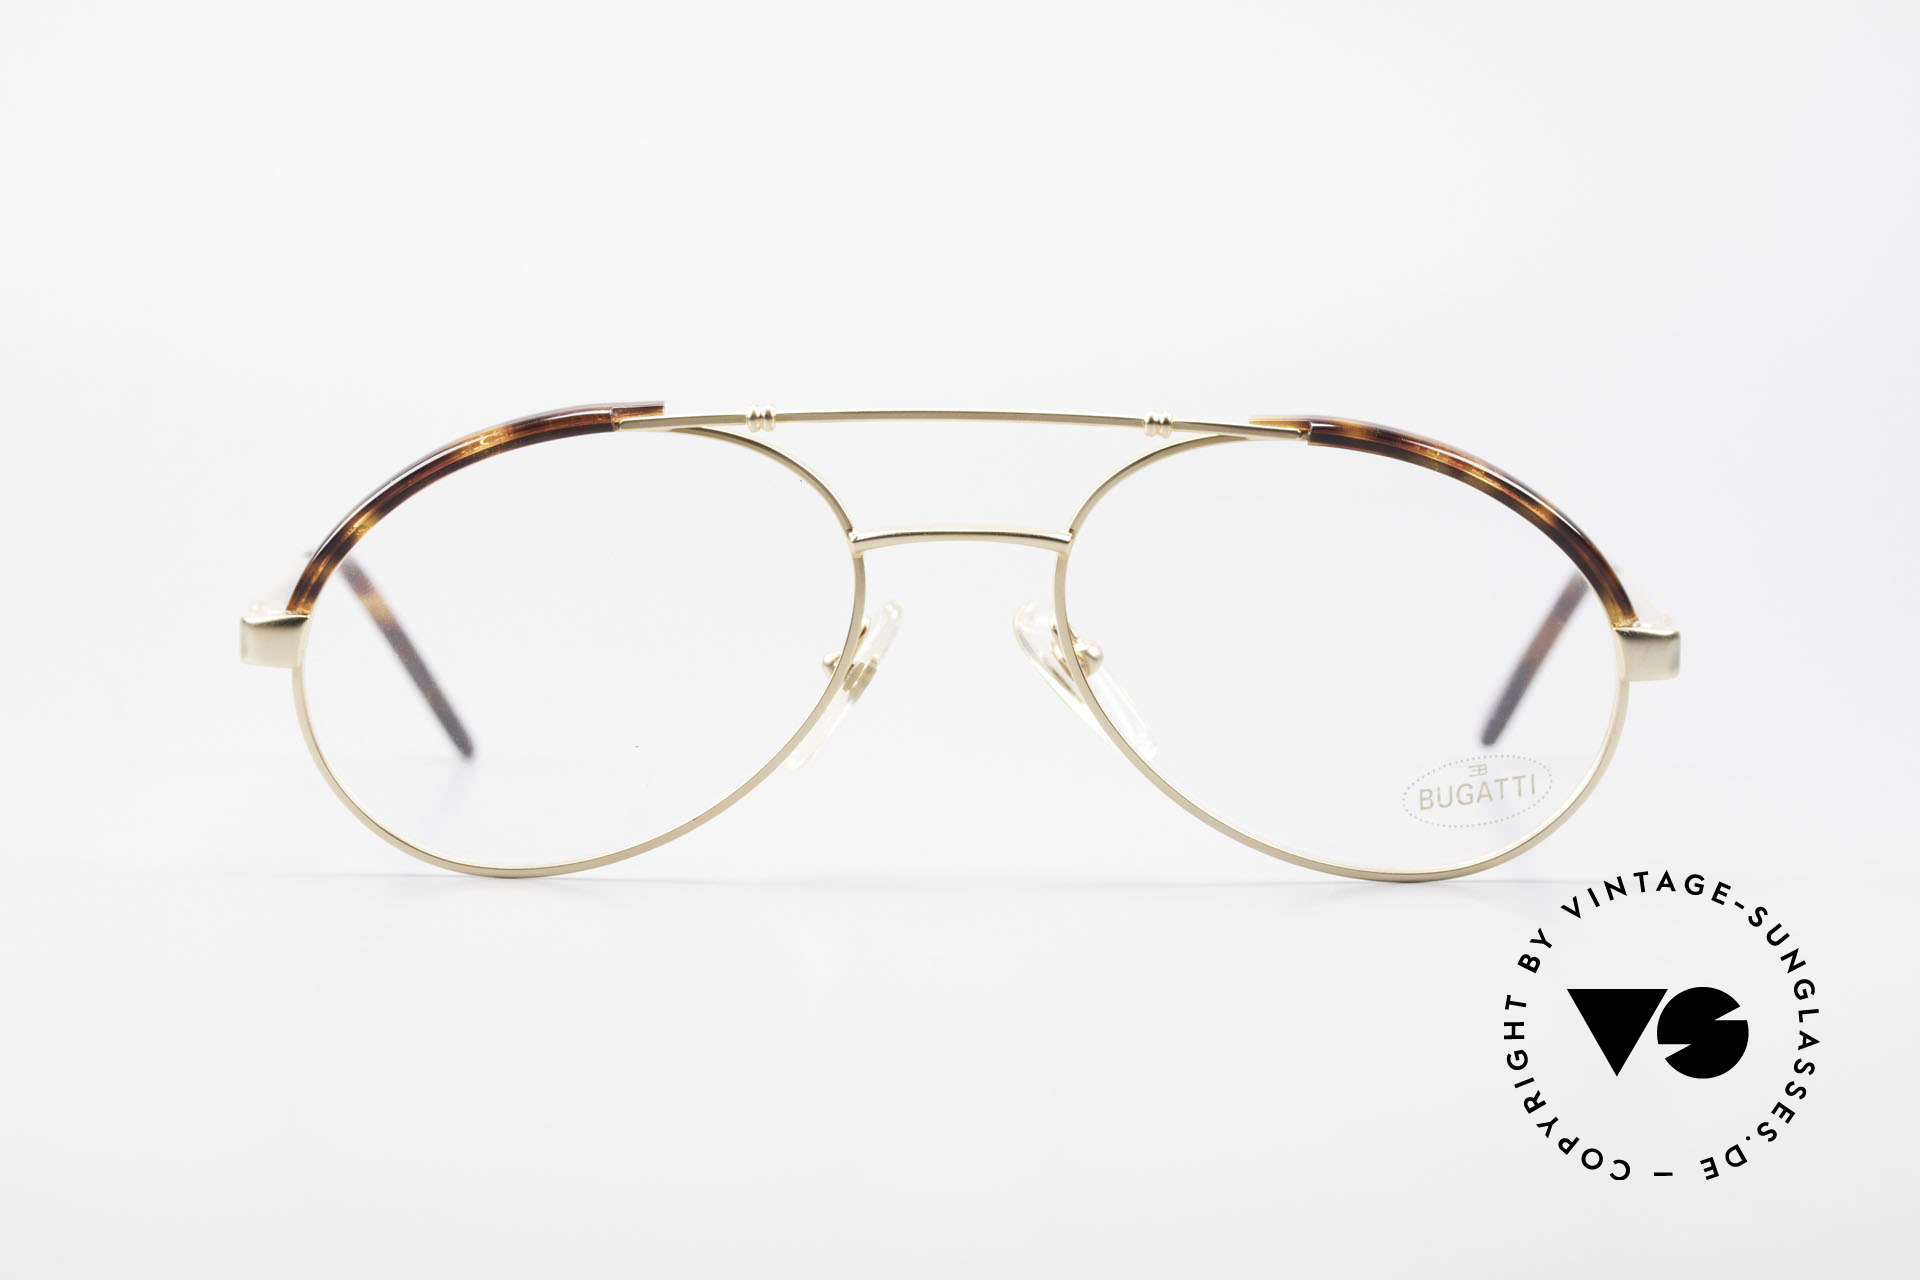 Bugatti 03081 90's Men's Glasses True Vintage, made around 1990 in France, top craftsmanship, Made for Men